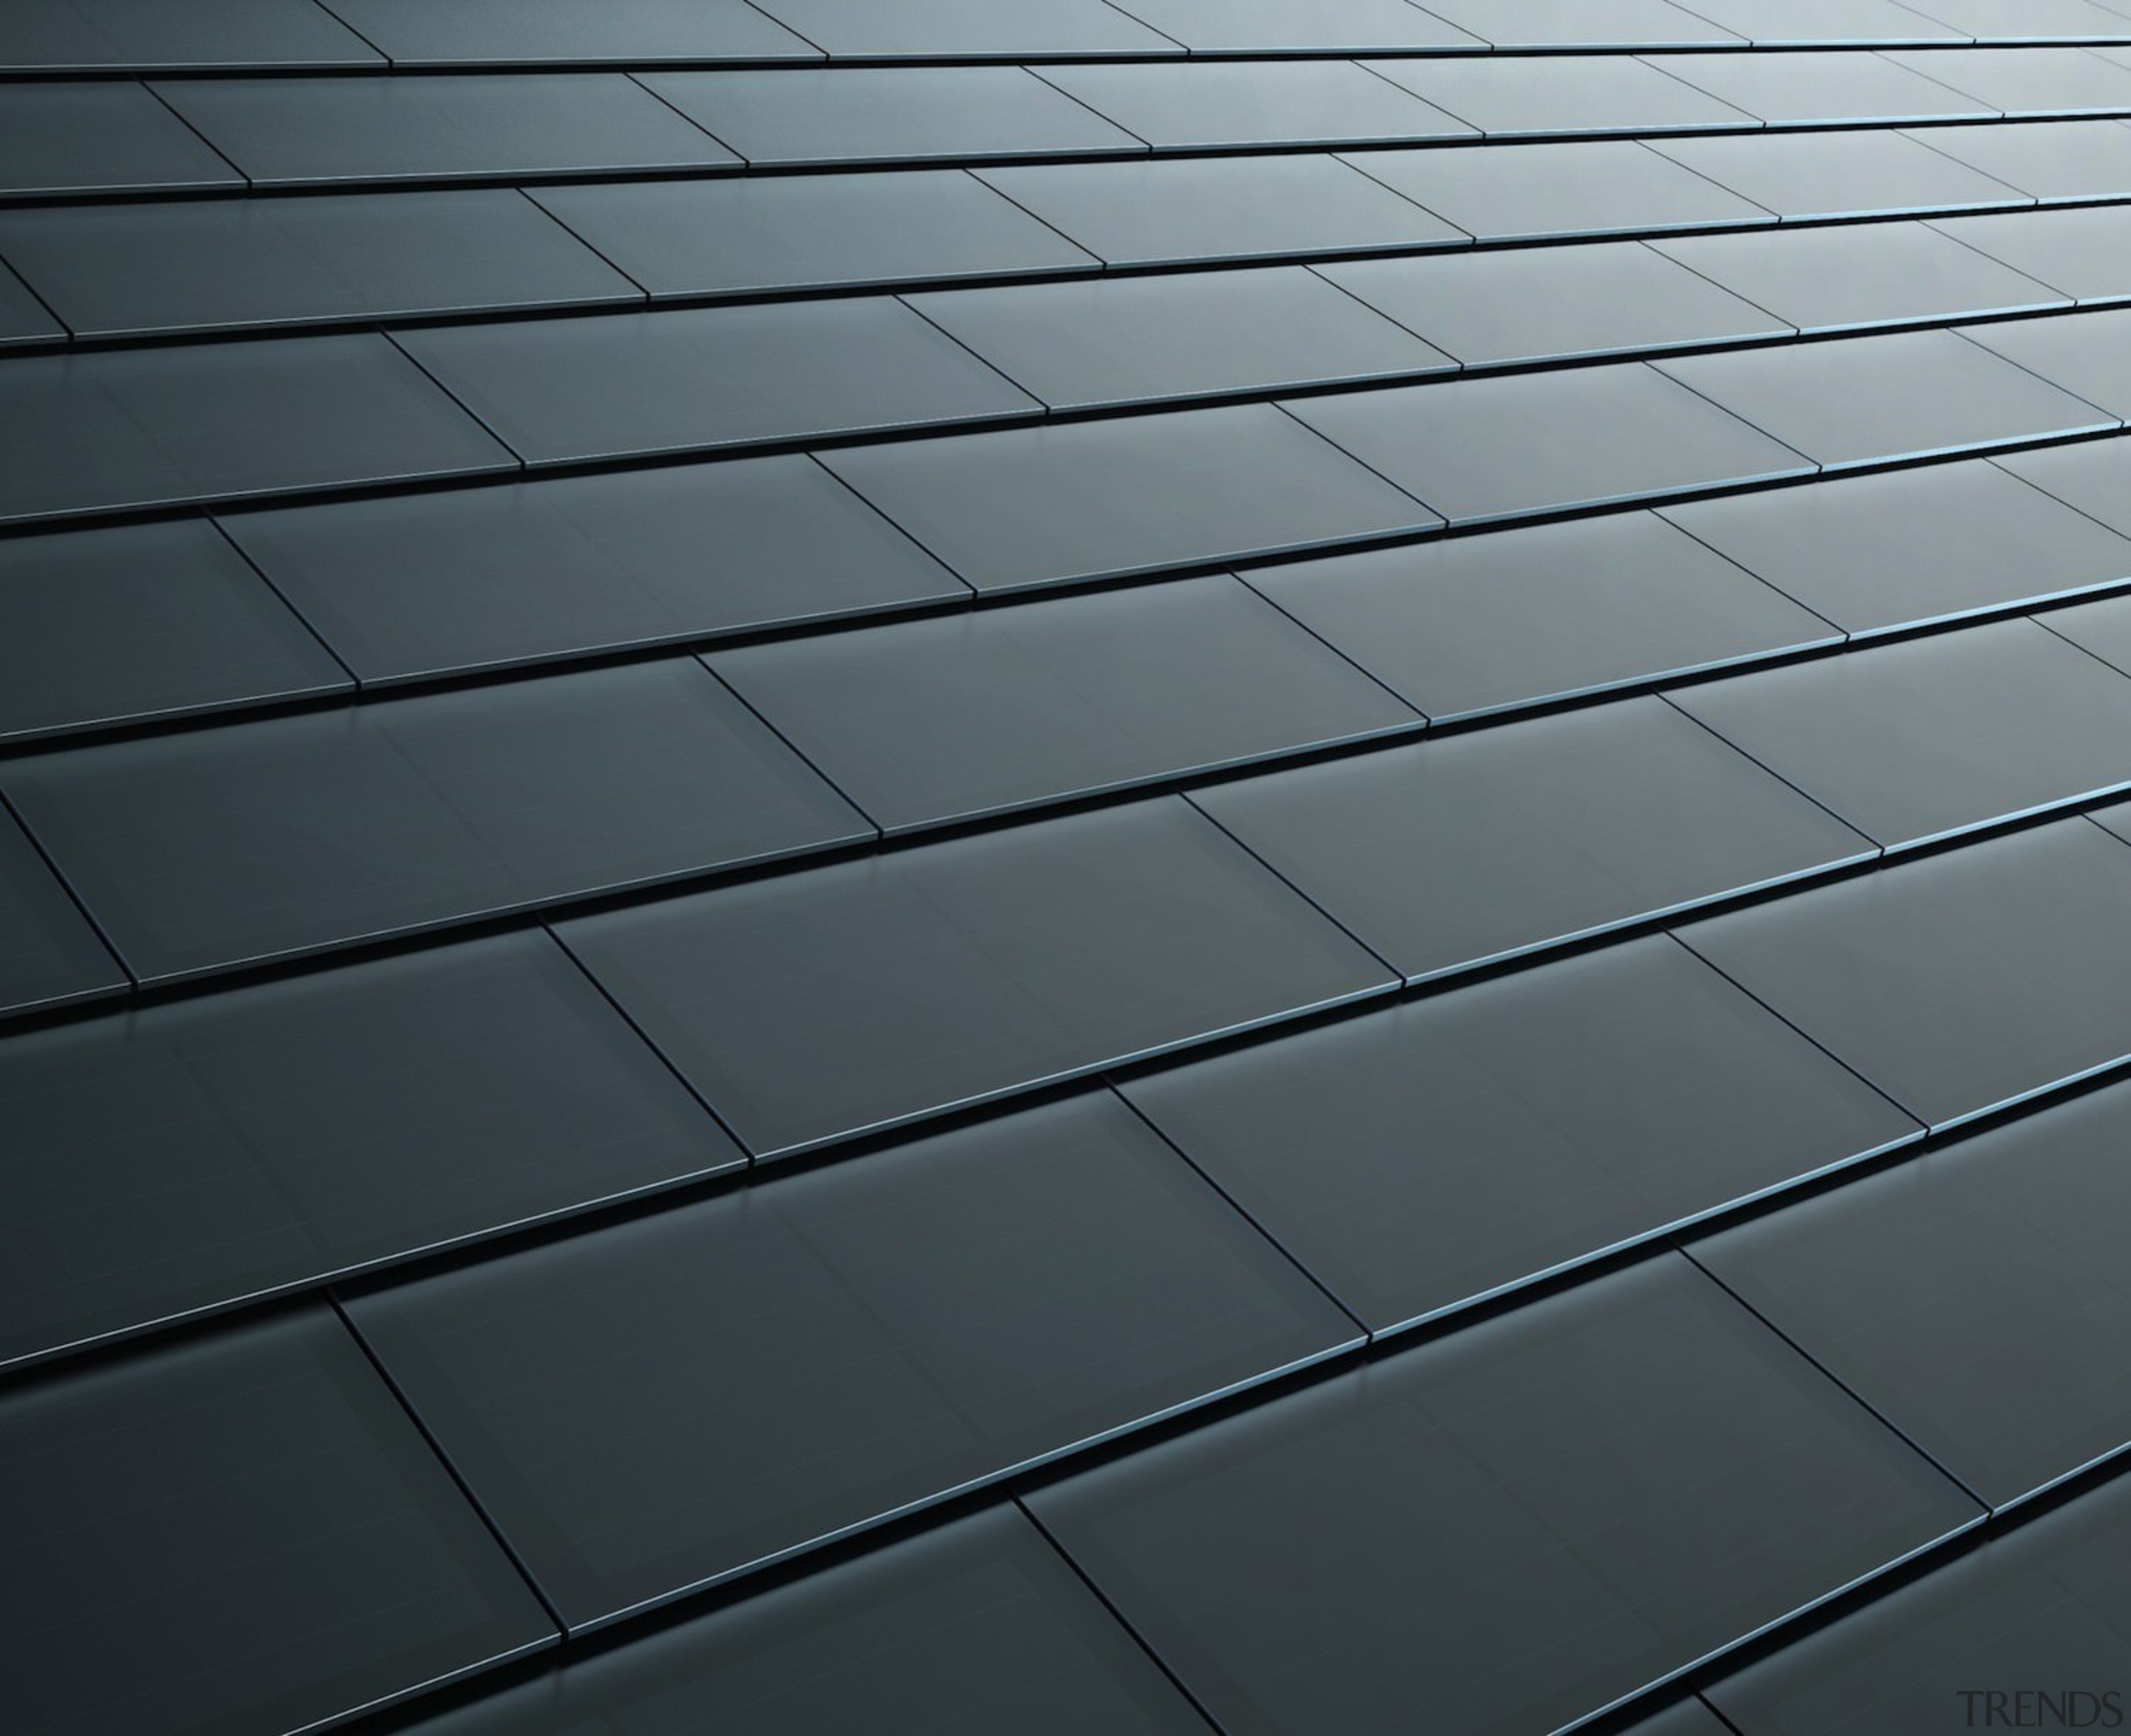 Tesla Solar Roof tiles - Tesla Solar Roof angle, daylighting, floor, light, line, material, road surface, sky, texture, wood, gray, black